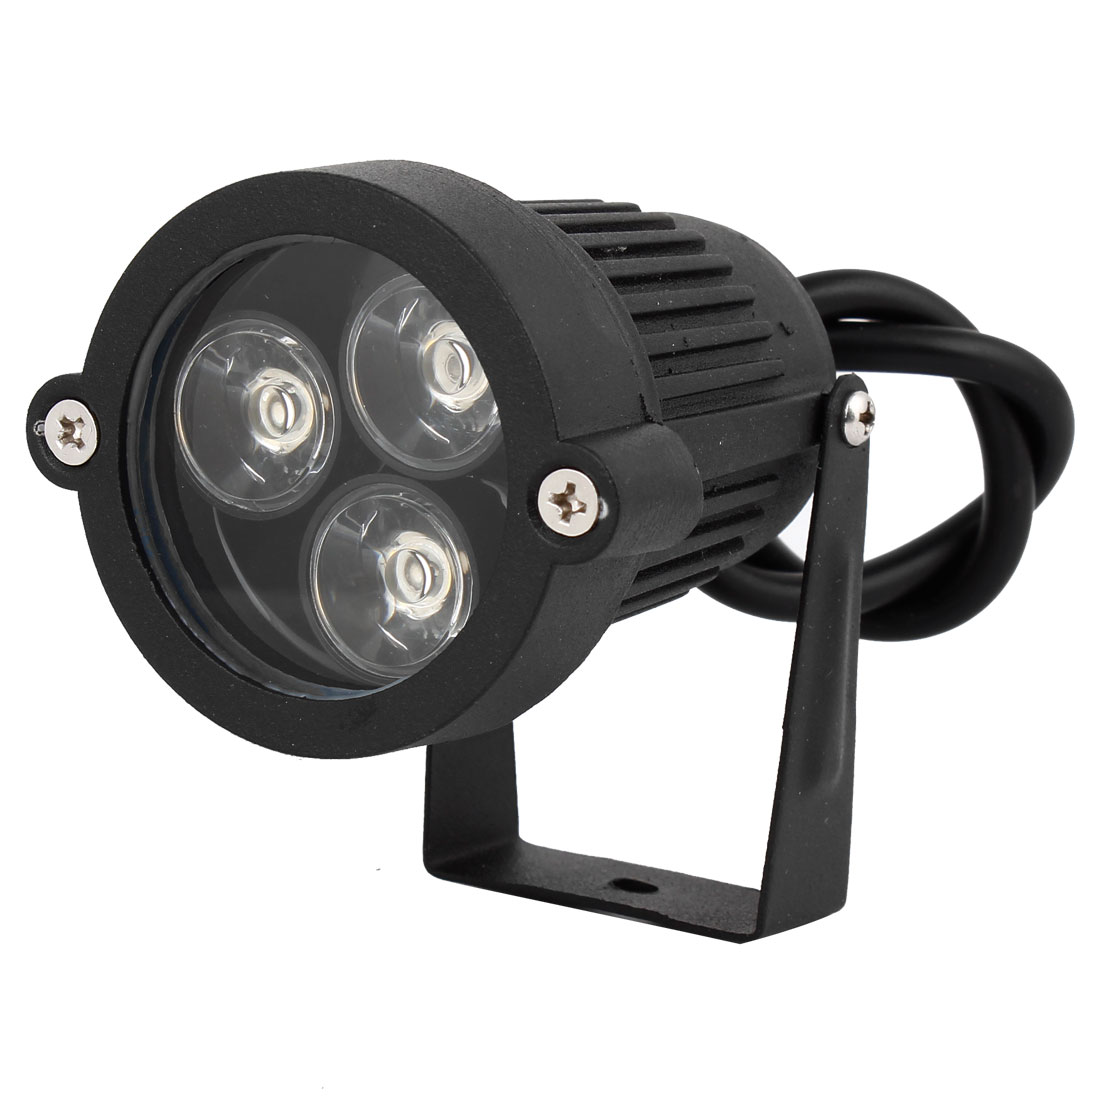 AC85-265V 6W 300-330LM Red LED Light Lawn Yard Garden Spotlight Lamp